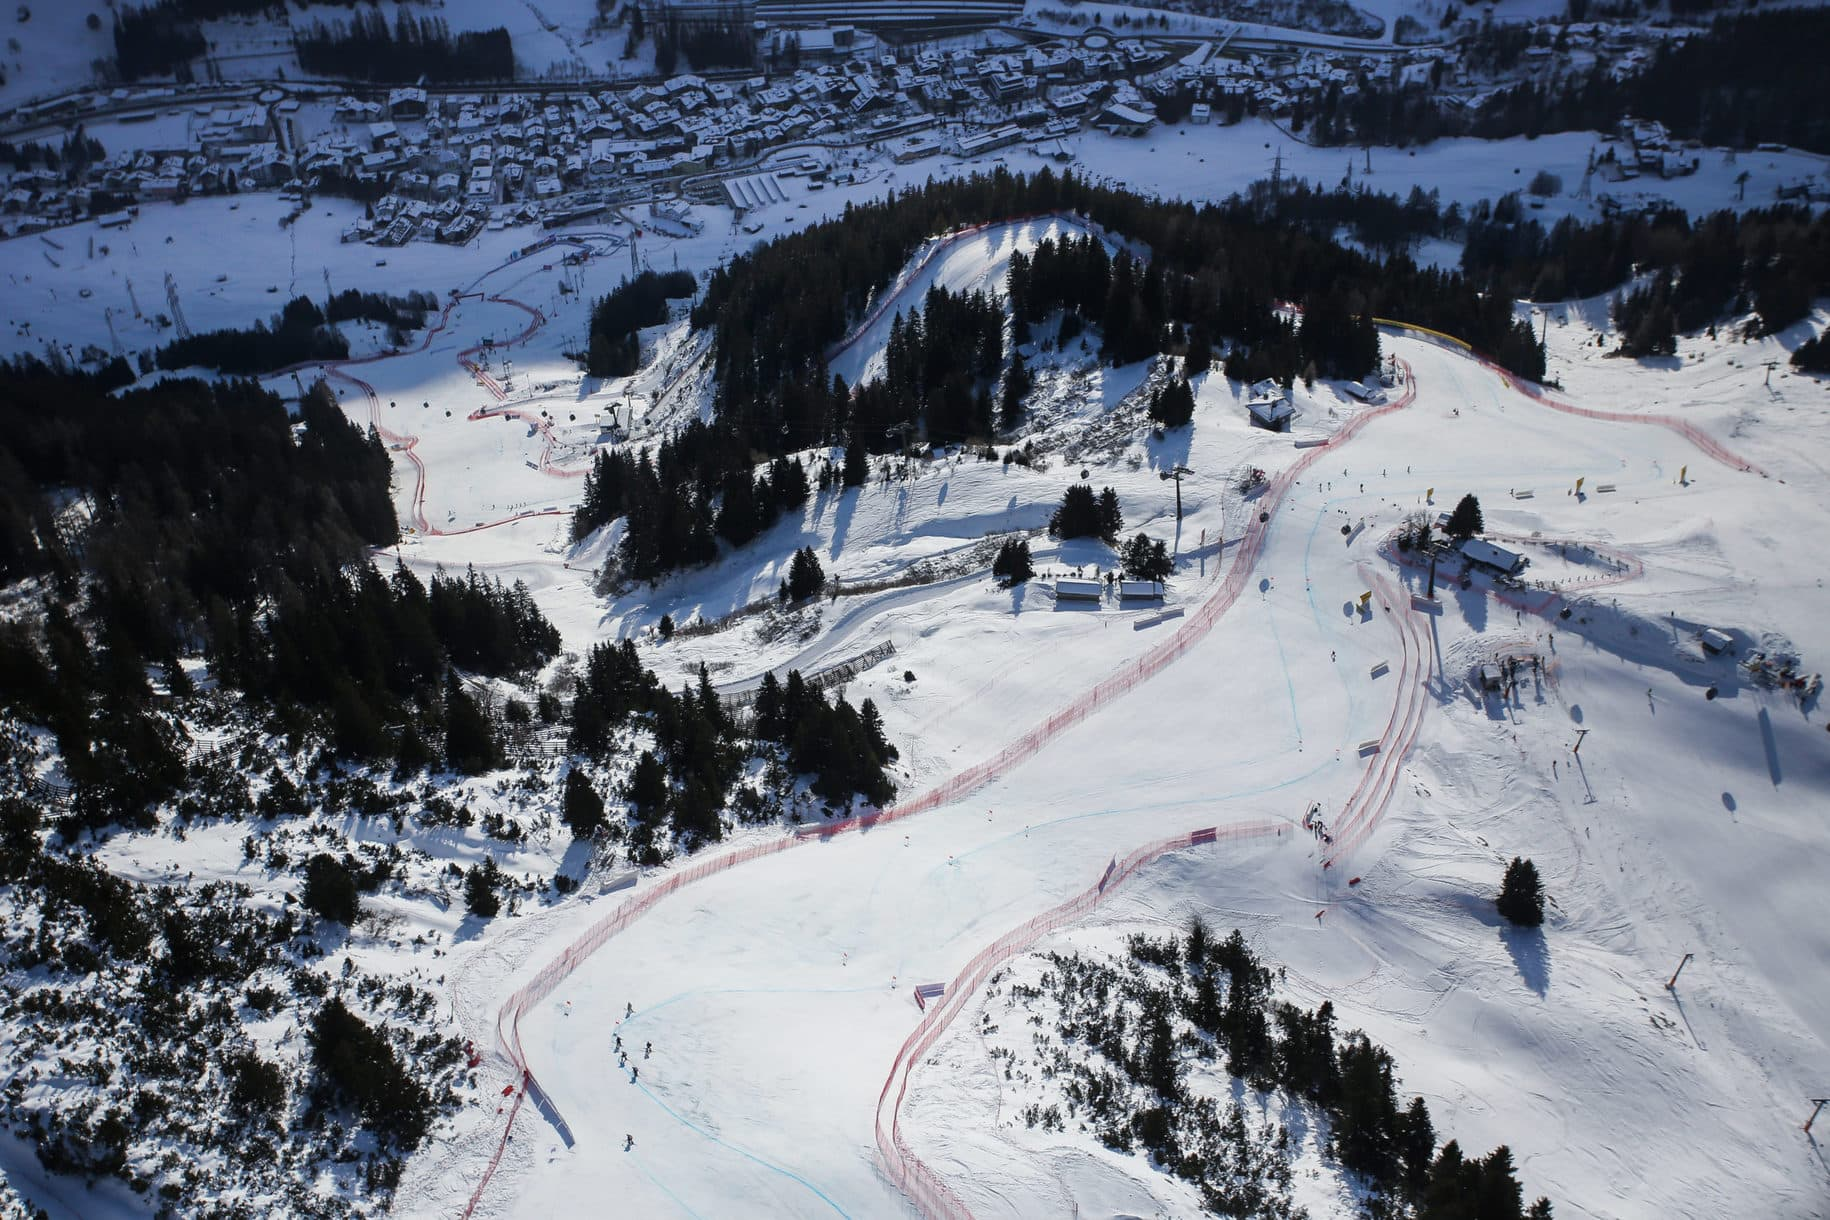 SANKT ANTON,AUSTRIA,09.JAN.21 - ALPINE SKIING - FIS World Cup, downhill, ladies. Image shows an overview of the track. Photo: GEPA pictures/ Daniel Goetzhaber